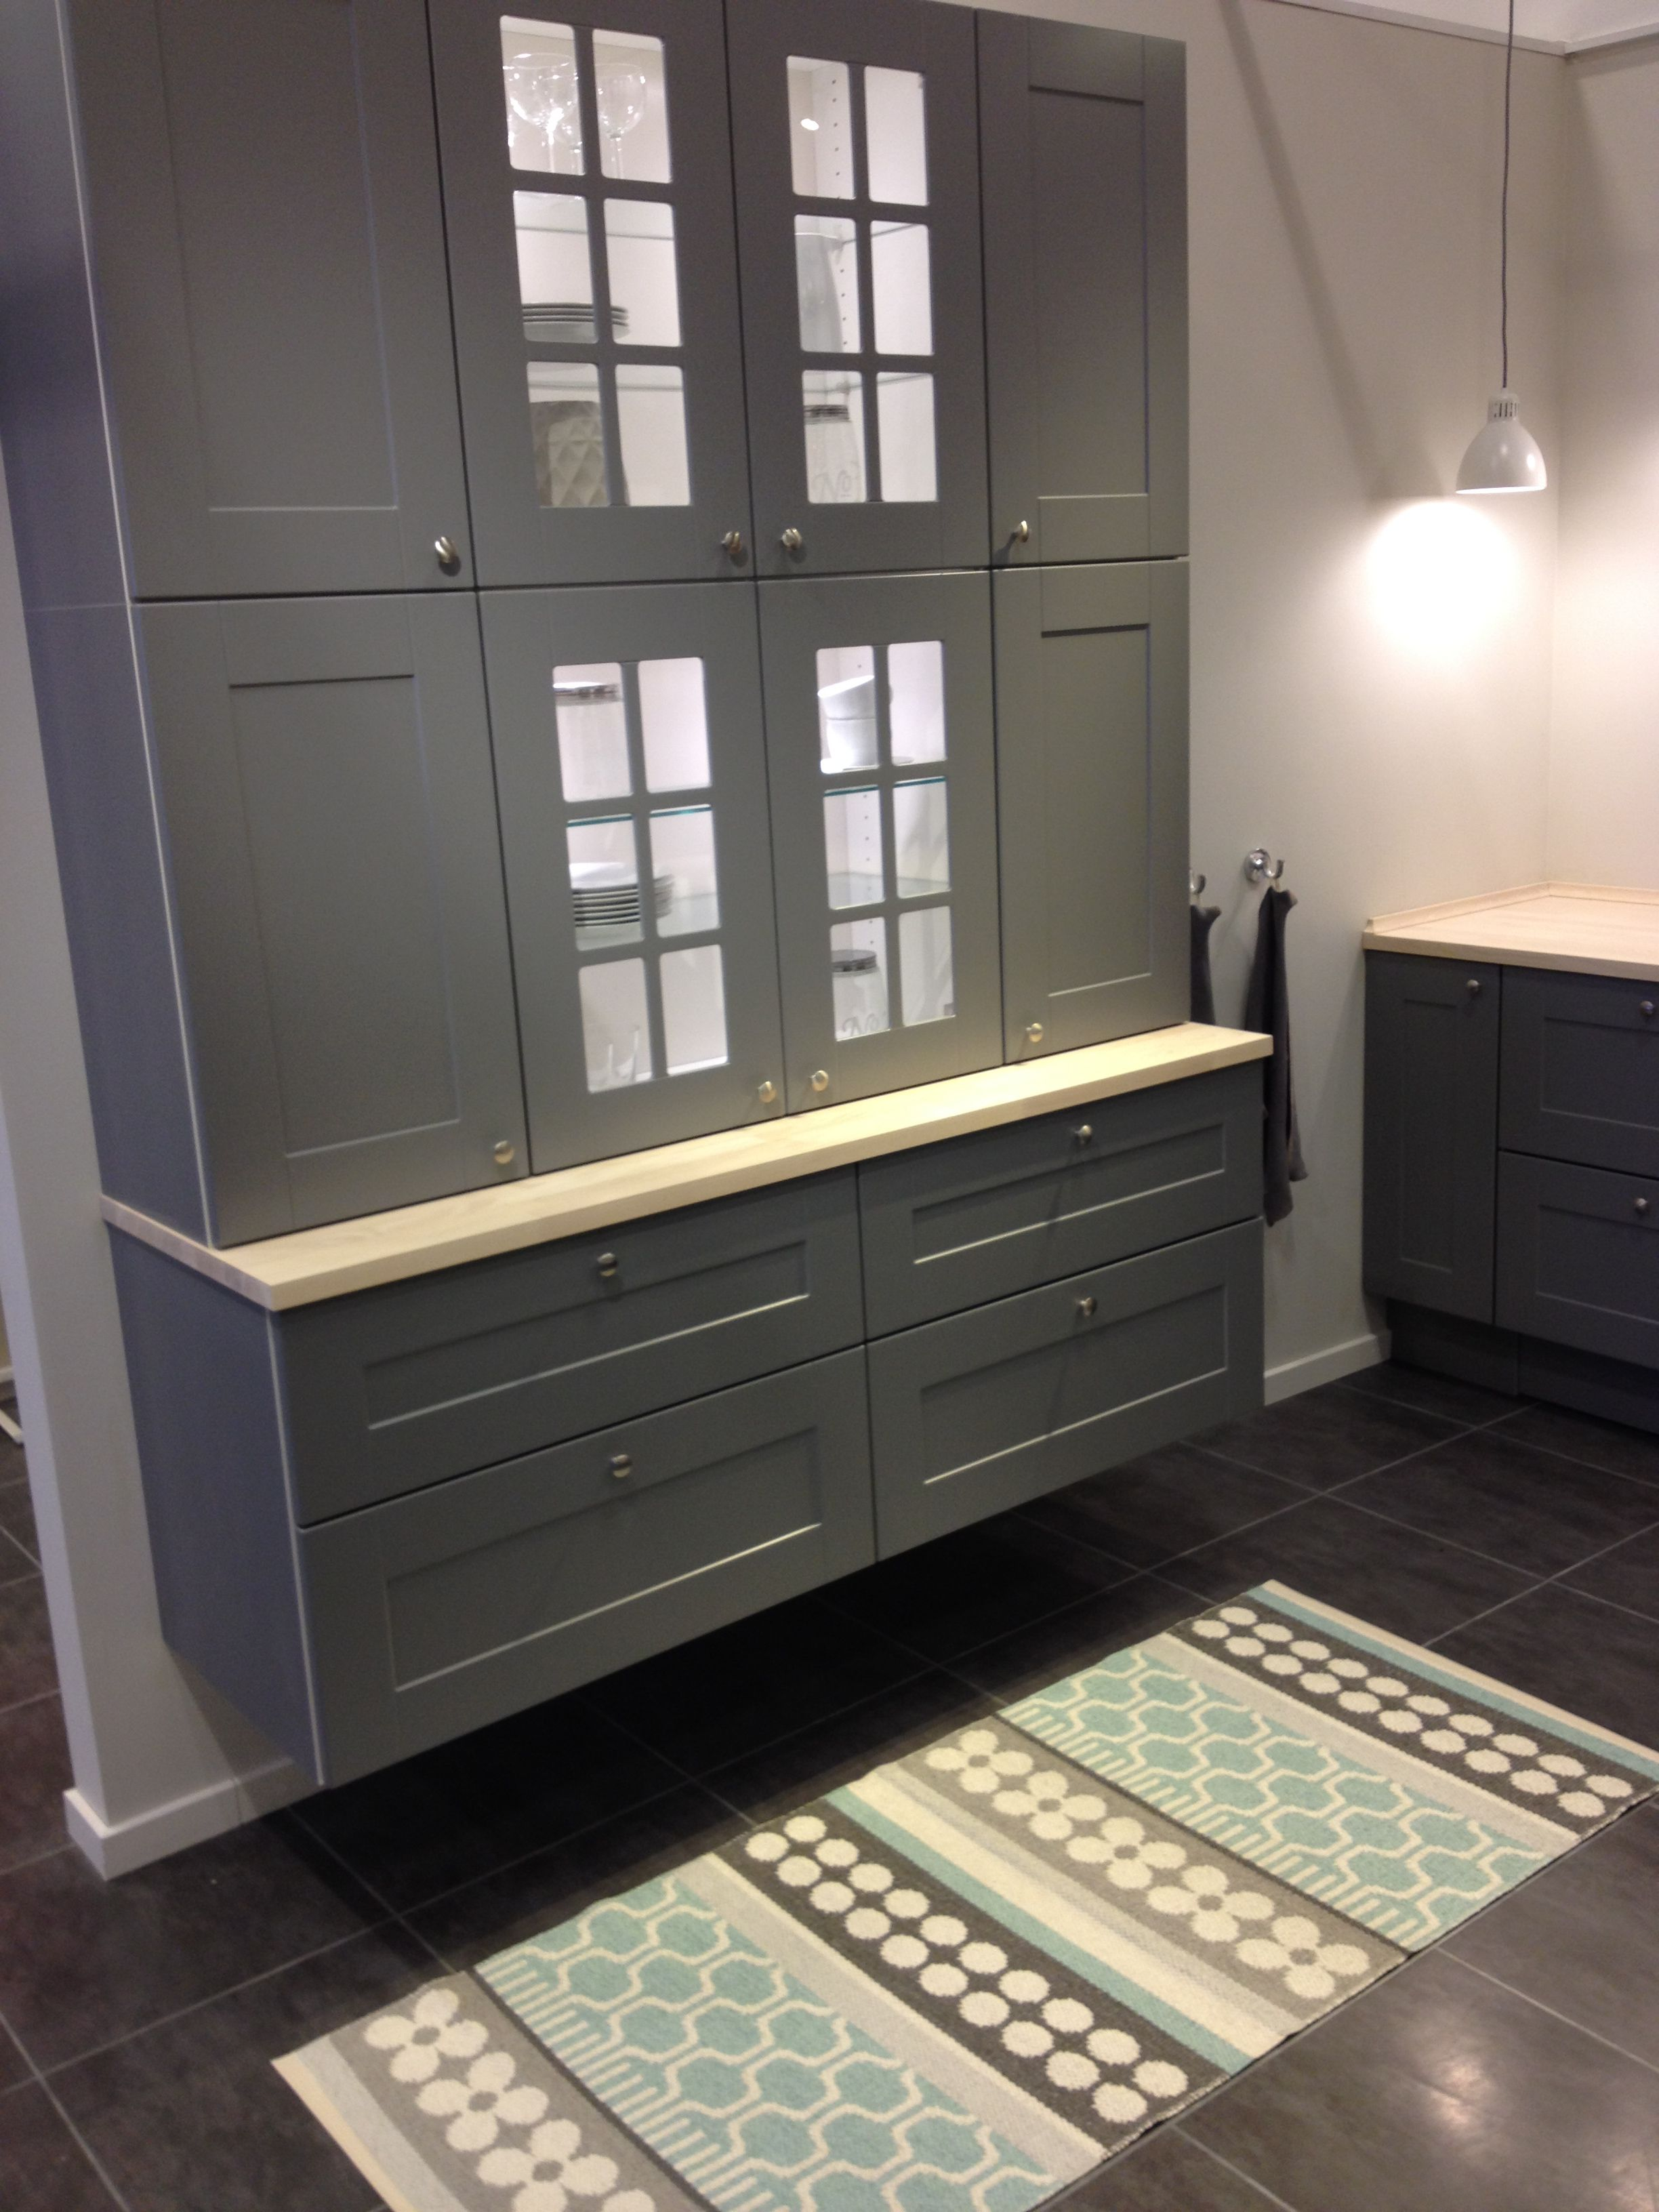 HTH Kitchen DK, Pappelina Rugs, Light Point Archi lamps | HTH ...